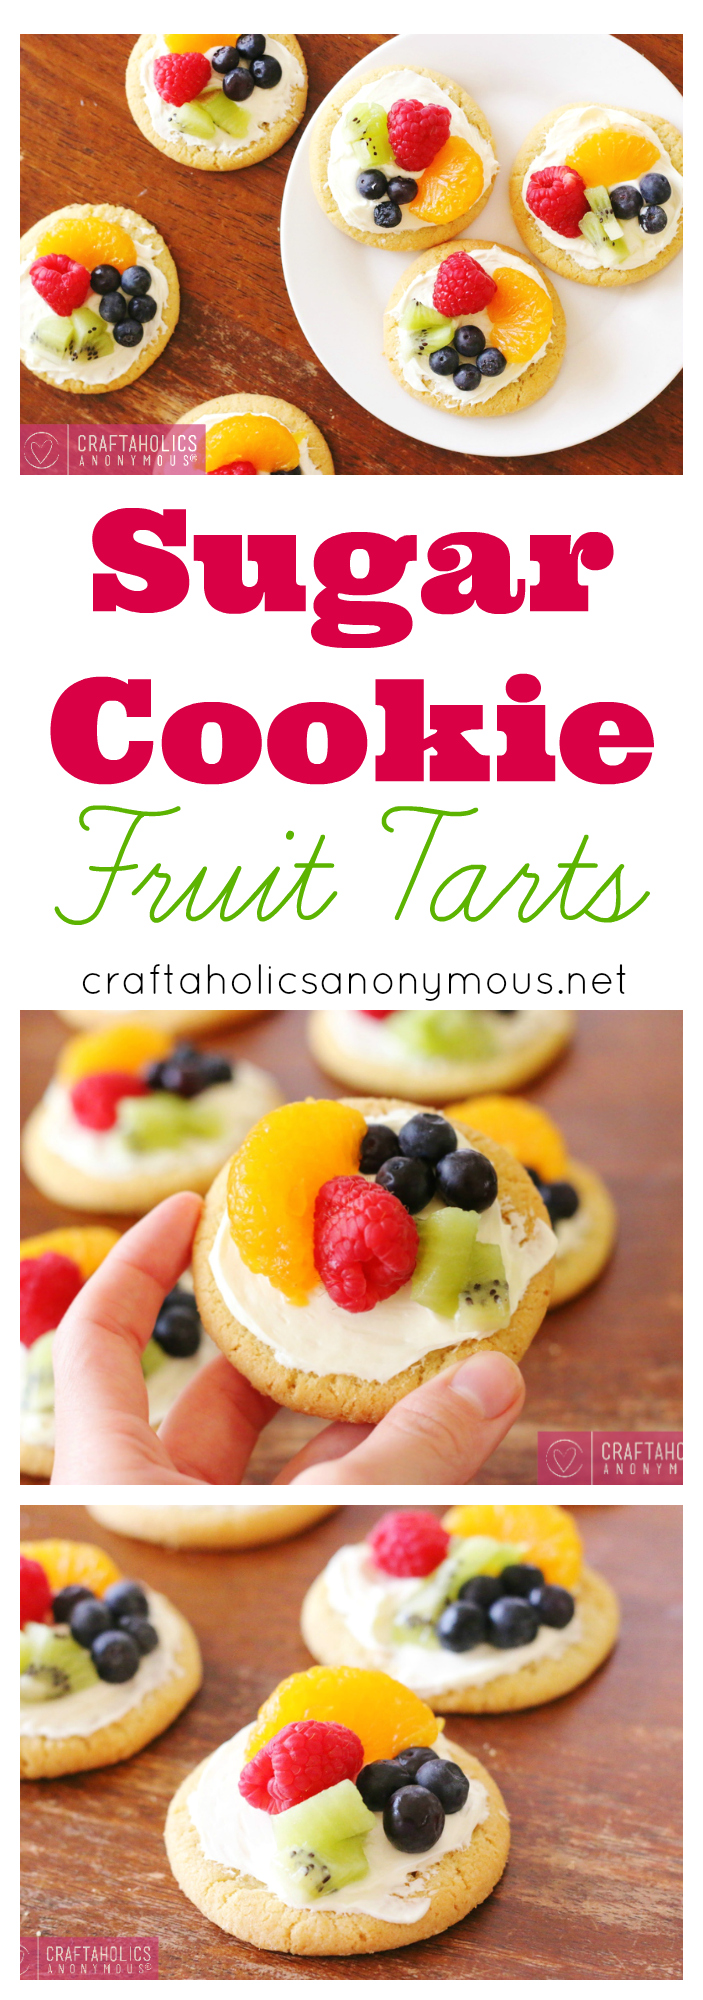 Make these delicous and easy Sugar Cookie Fruit Tarts for your next spring bash!